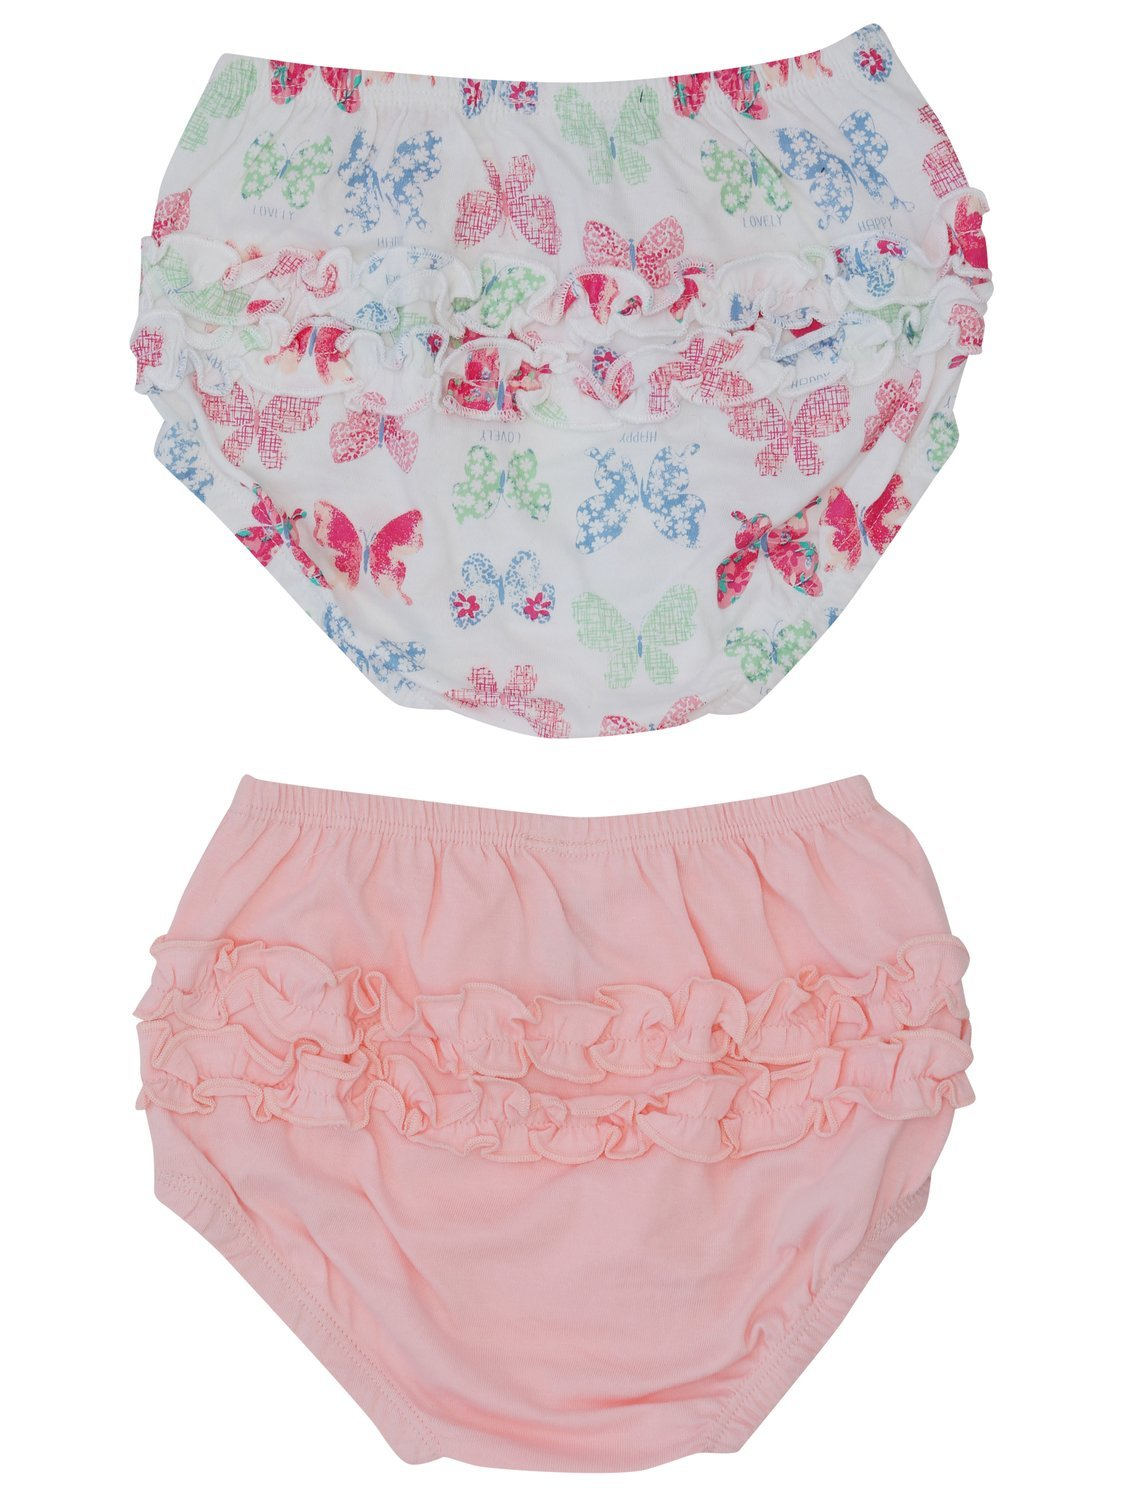 M& Co Baby Girl 100% Cotton Plain Pink Butterfly Print Ruffle Frilly Knickers Two Pack